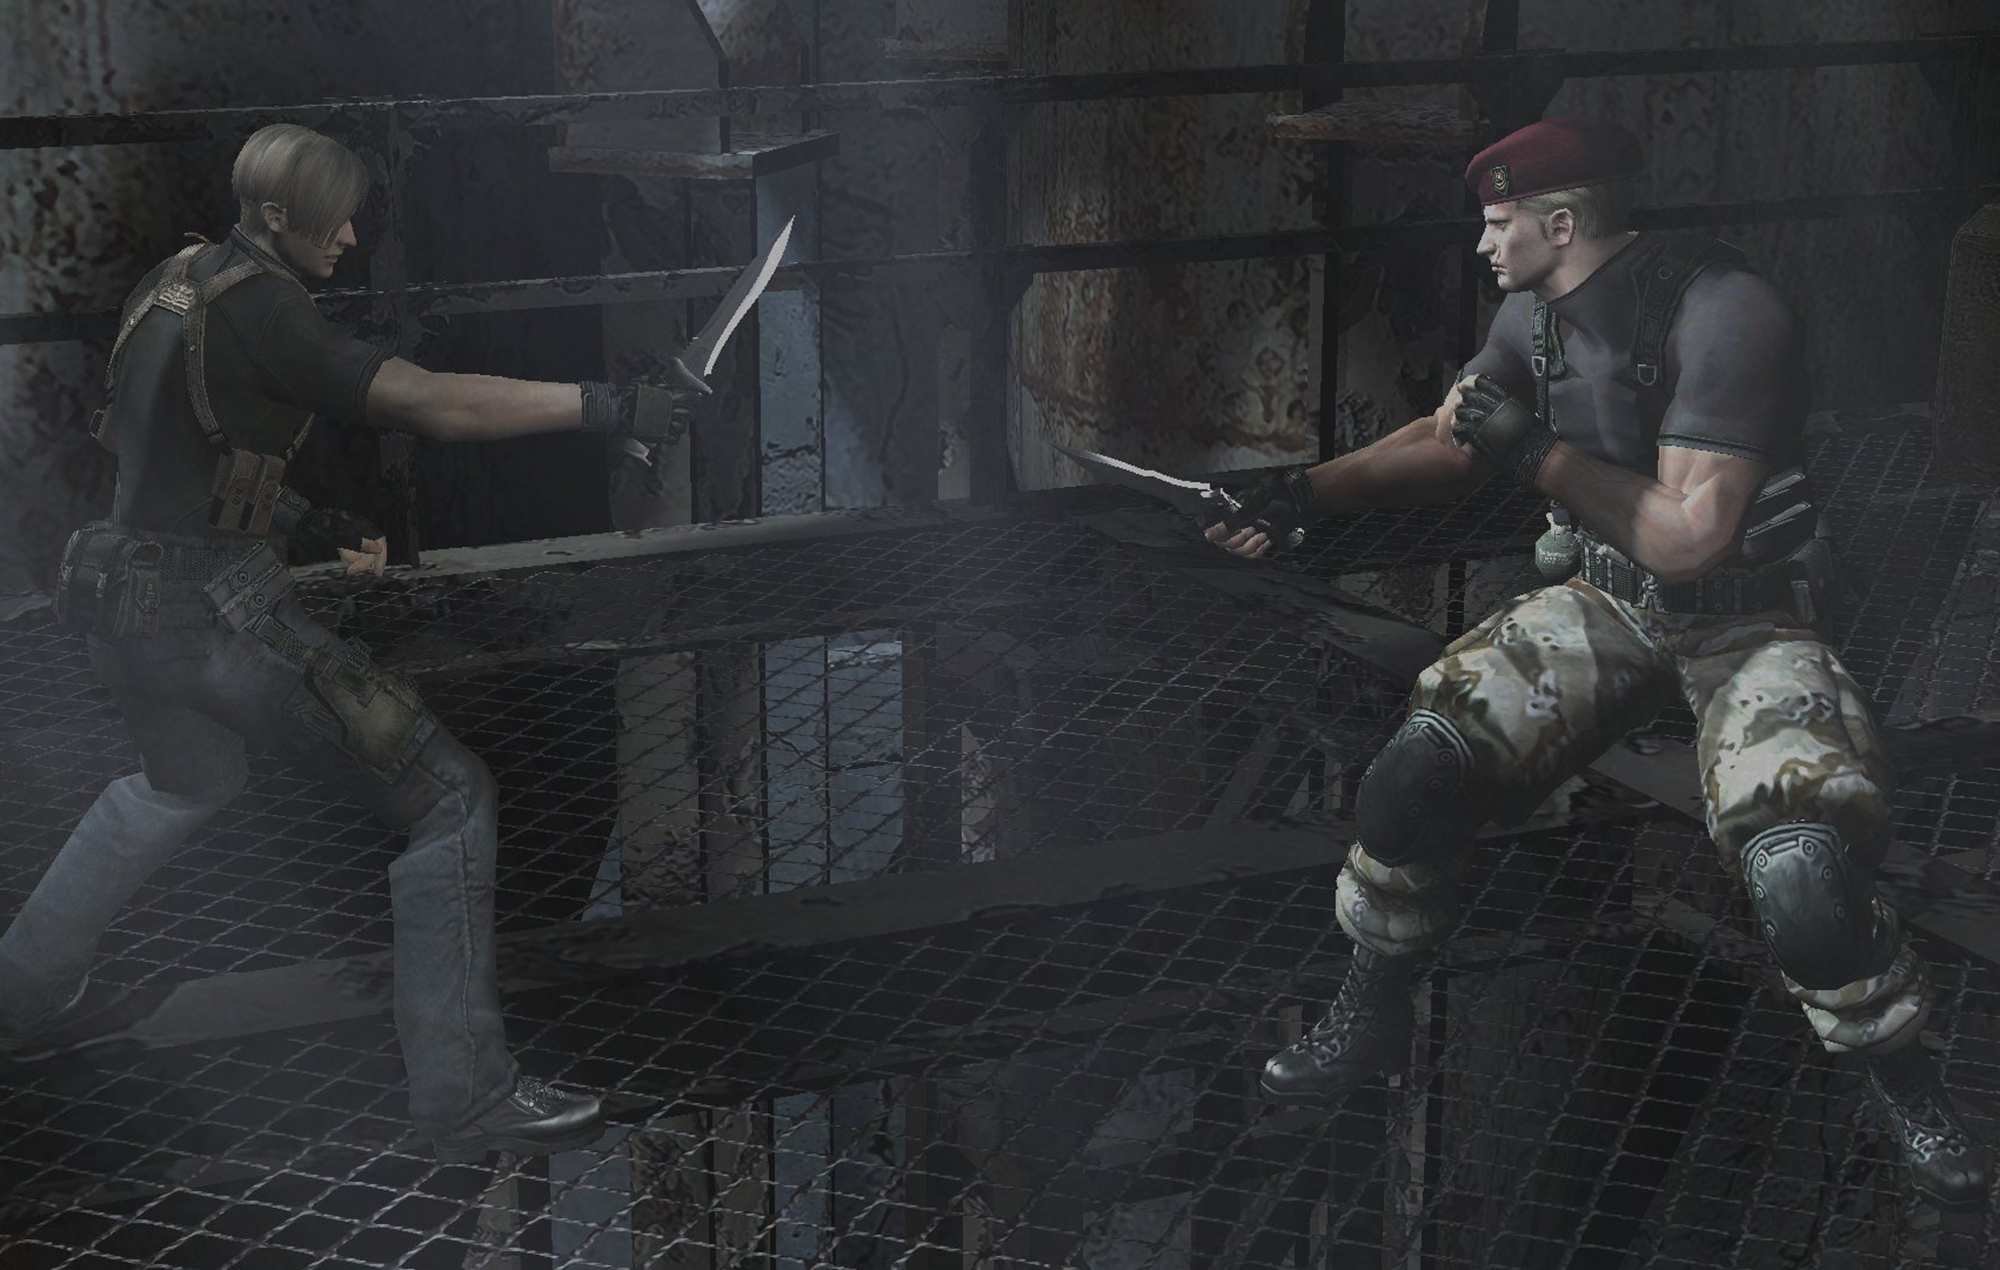 Don't want a 'Resident Evil 4' remake? Tough. The world needs it